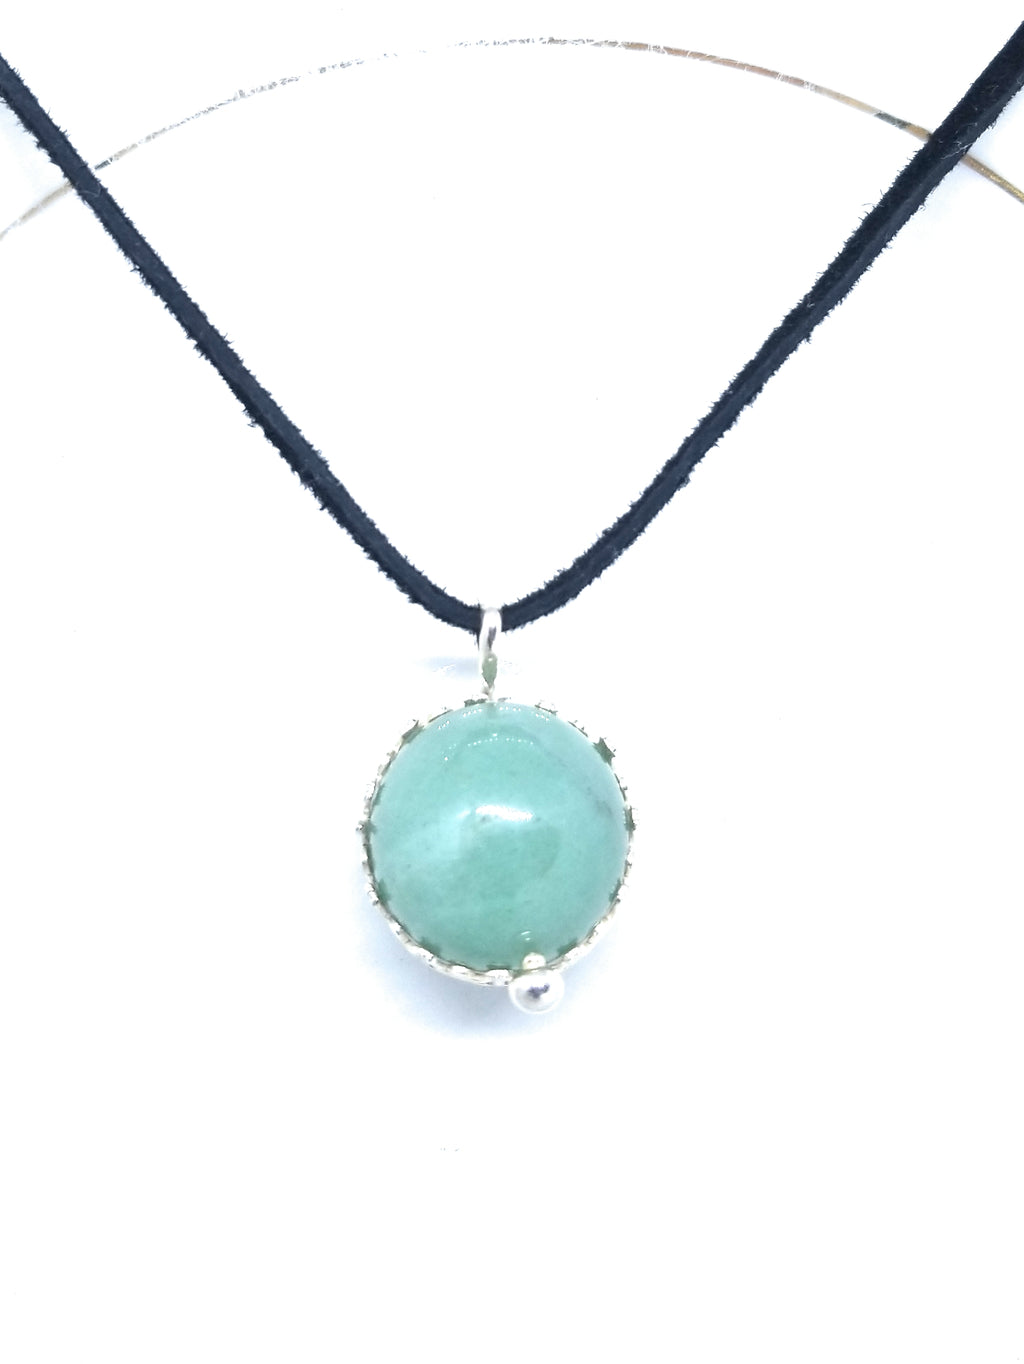 Green Aventurine Sphere Sterling Silver Pendant Necklace